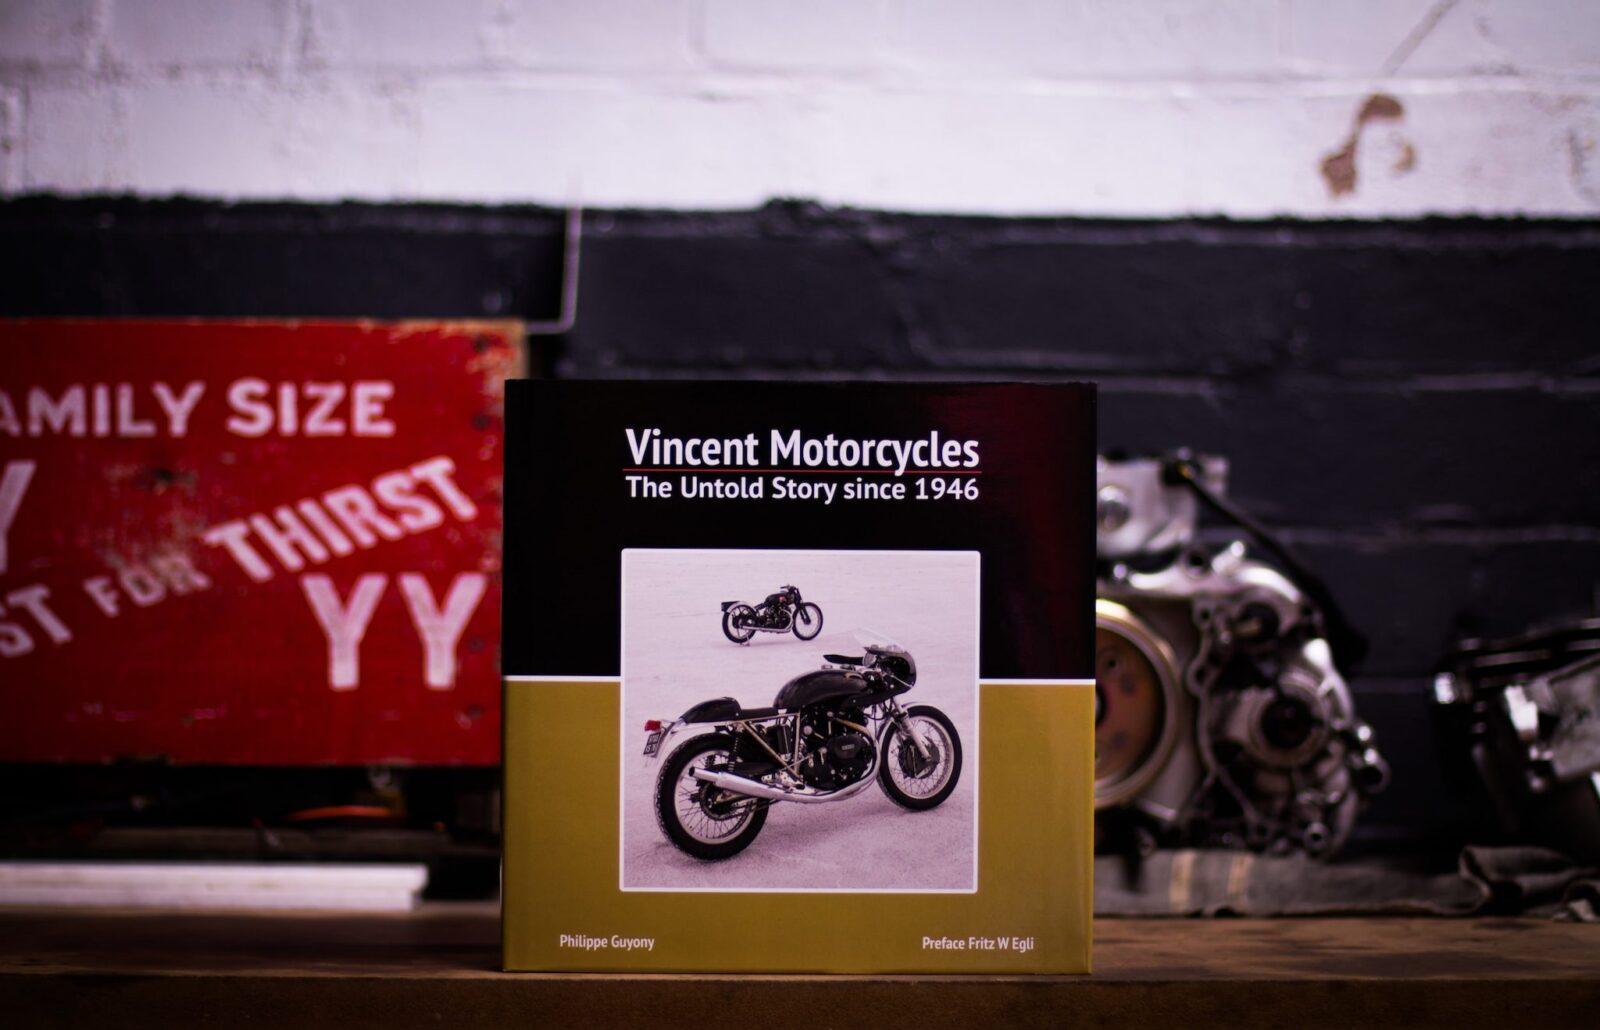 Vincent Motorcycles The Untold Story Since 1946 Book 1600x1030 - Vincent Motorcycles: The Untold Story Since 1946